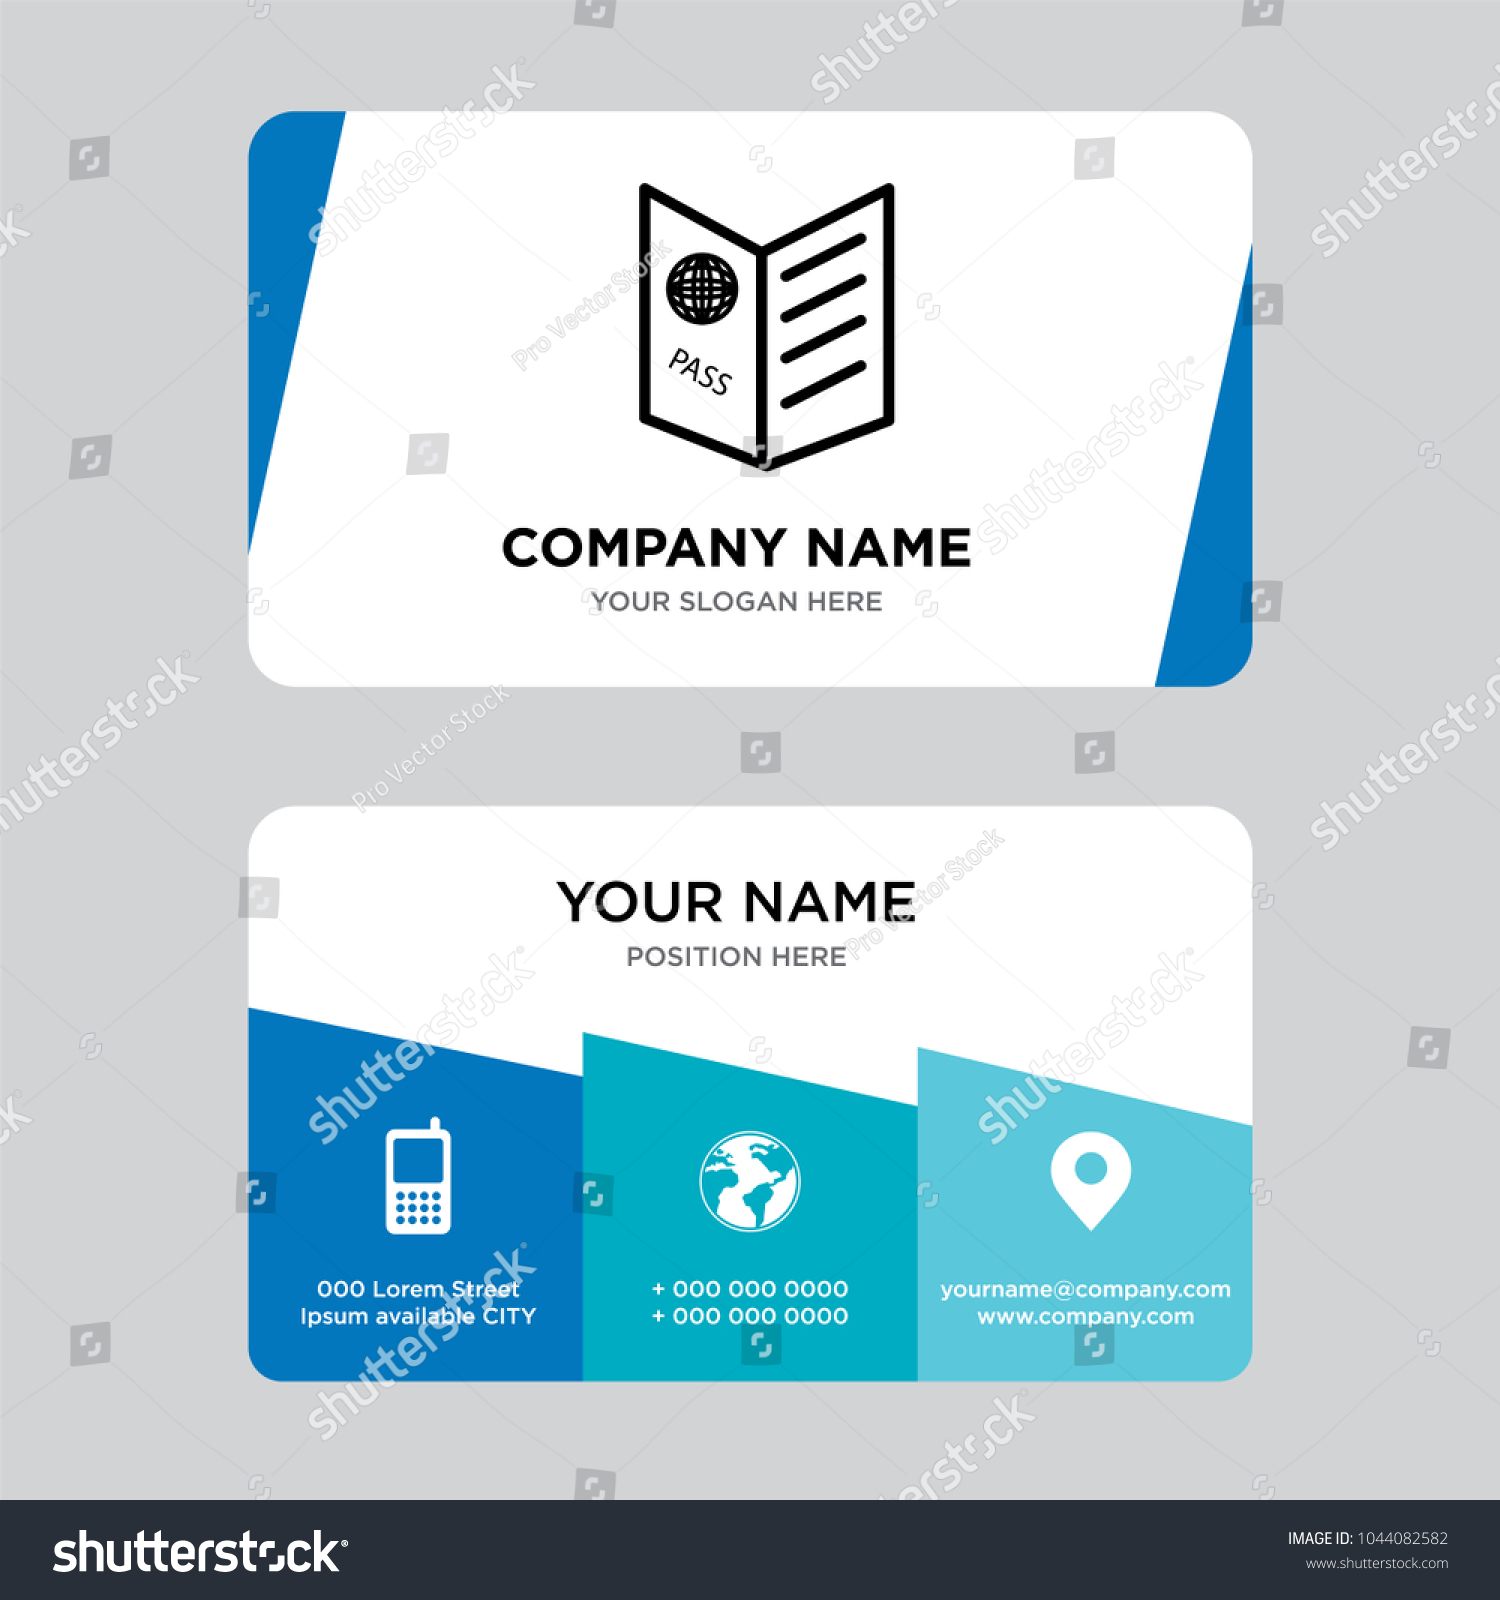 Passport Visa Business Card Design Template Stock Vector 1044082582 ...